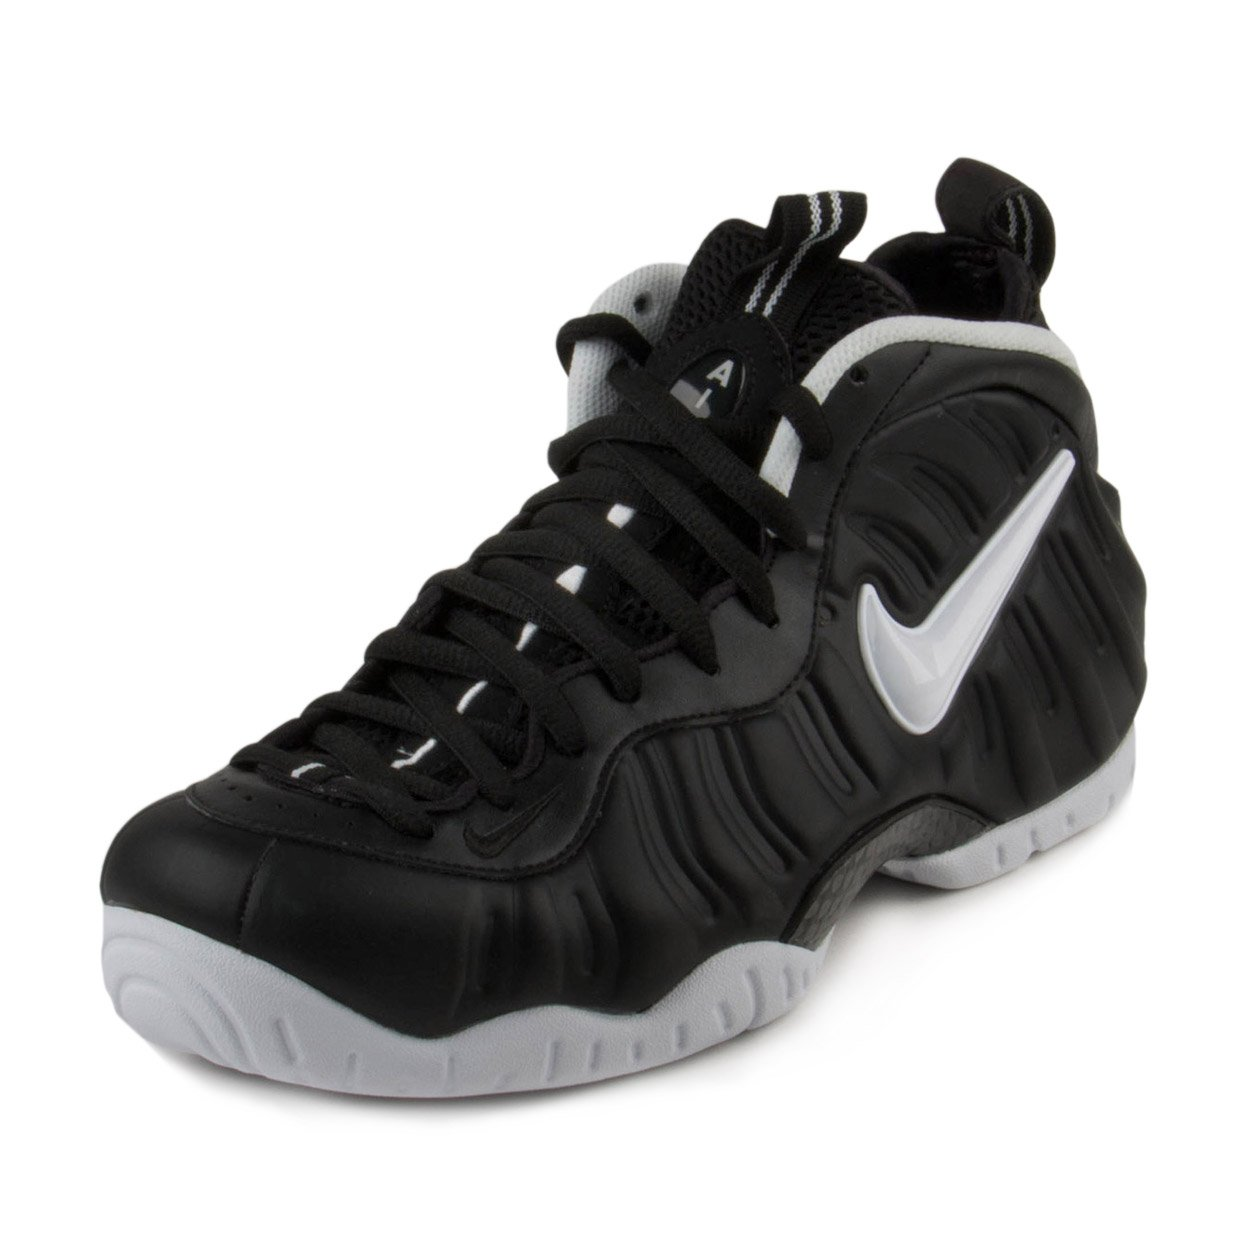 d74c1525d7f46 Galleon - NIKE AIR Foamposite PRO Mens Basketball-Shoes 624041-006 8.5 -  Black White